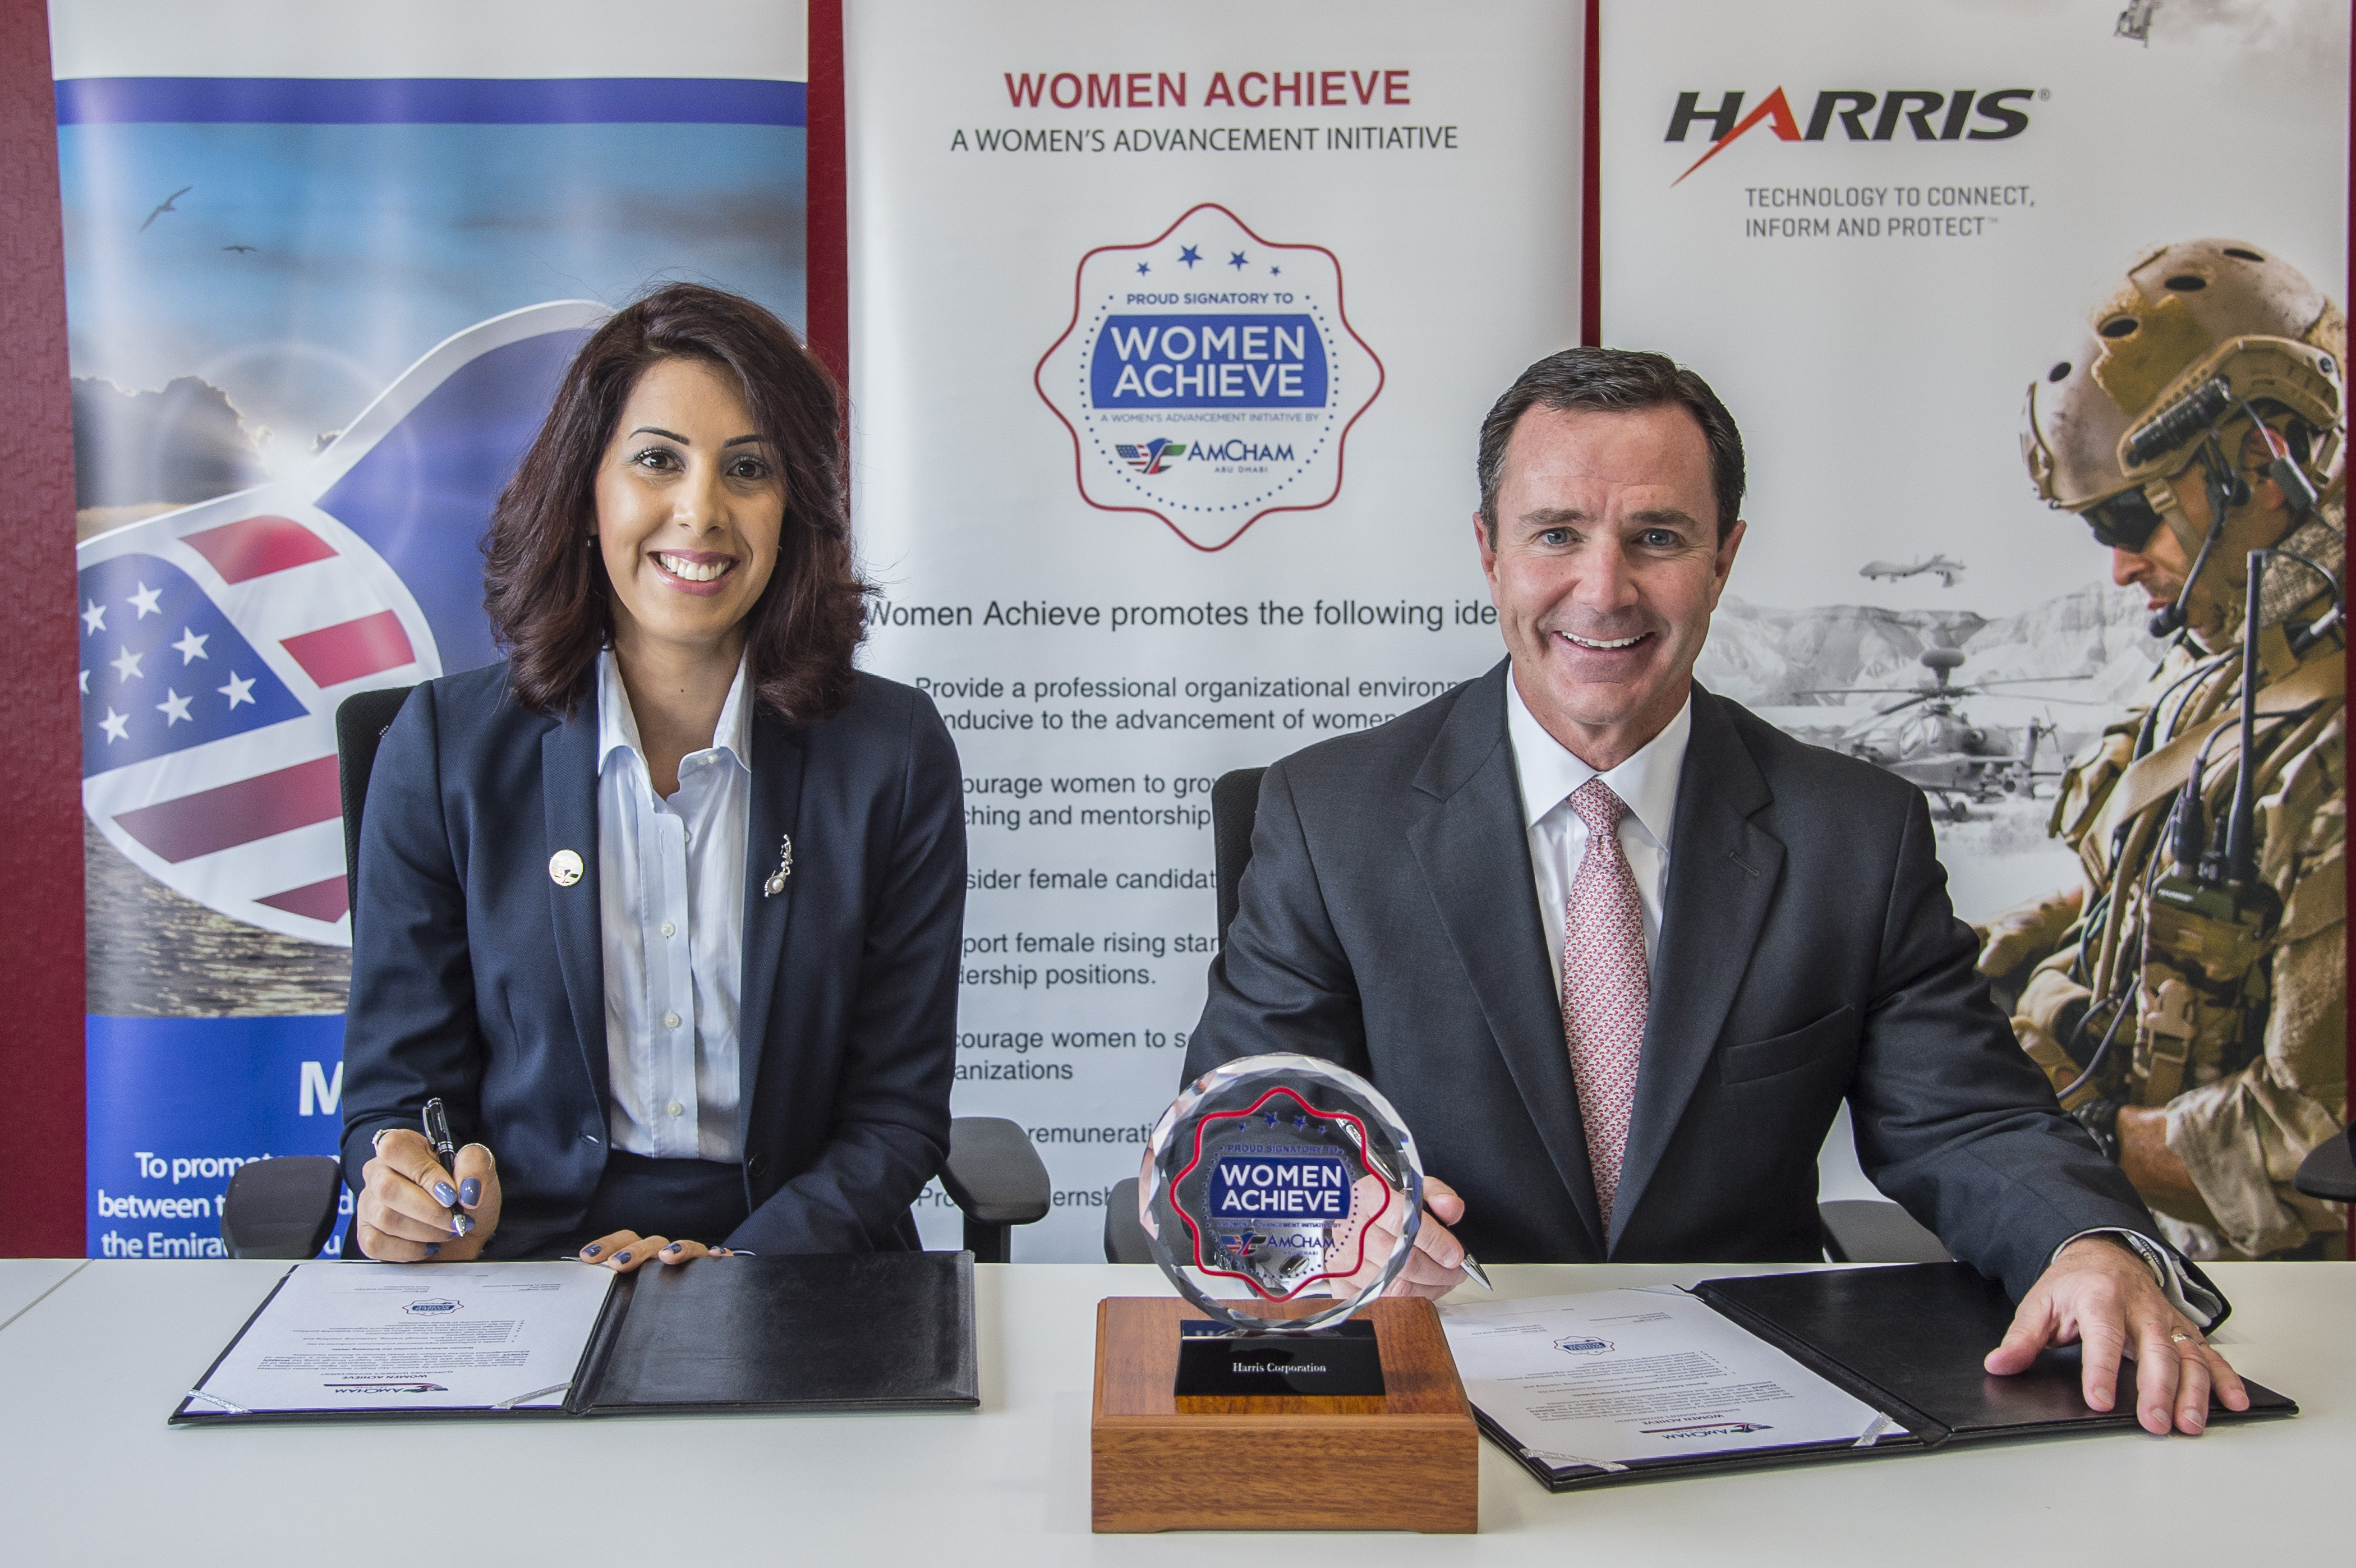 Dareen Zoughbi (left), Chairperson, Women in Business Committee, AmCham Abu Dhabi, and Bill Brown, Chairman, President and CEO of Harris Corporation, announce Harris' membership in WOMEN ACHIEVE, an innovative program that promotes the professional advancement of women. (Photo: Business Wire)